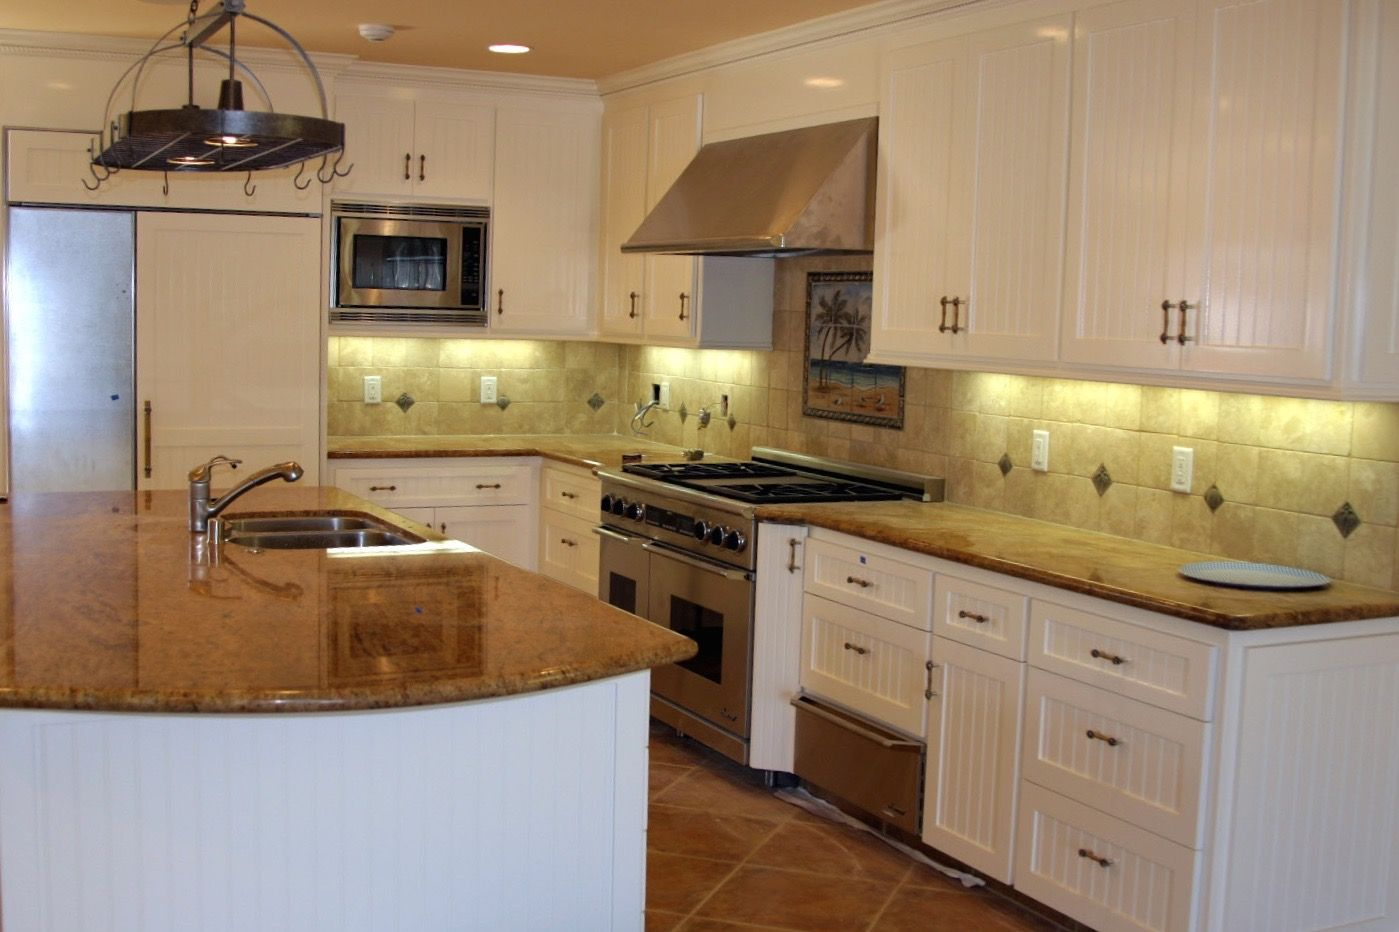 A beautiful kitchen remodel will all new